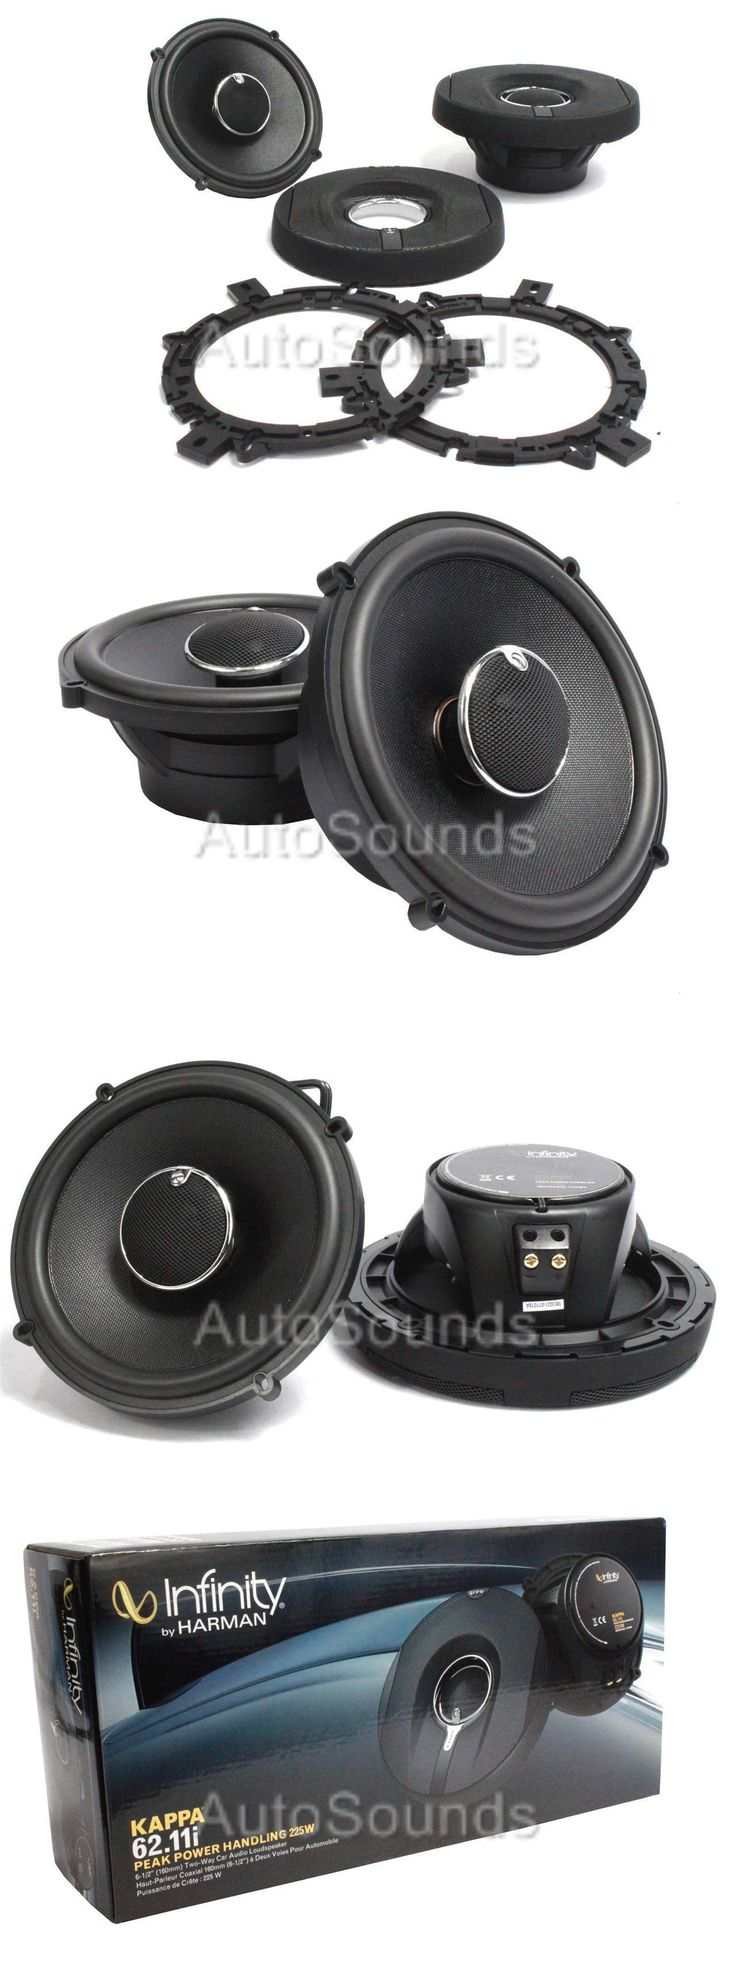 Car Speakers and Speaker Systems: Infinity Kappa 62.11I 450 Watt 6.5 Coaxial 2-Way Car Audio Speakers 6-1 2 New -> BUY IT NOW ONLY: $103.17 on eBay!